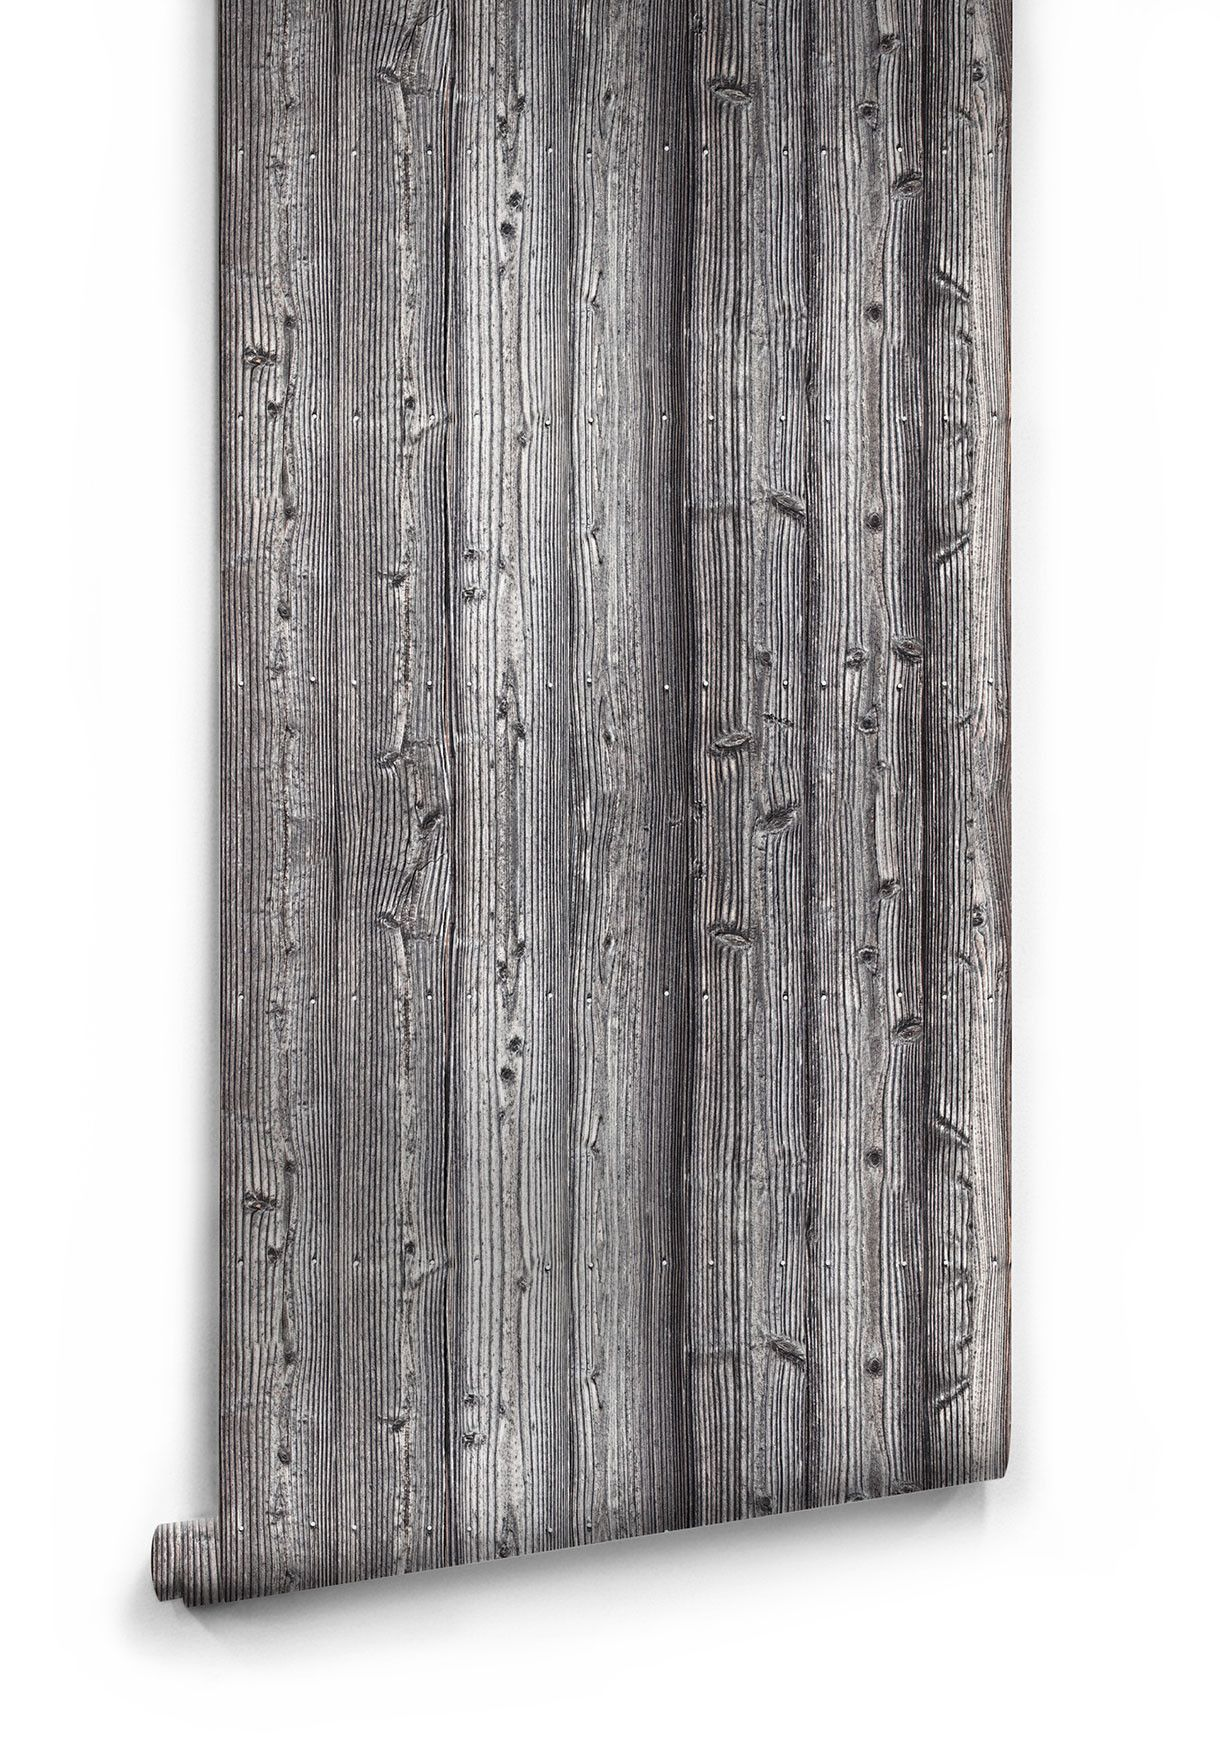 Sample of Saltwashed Wood Boutique Faux Wallpaper design by Milton & King